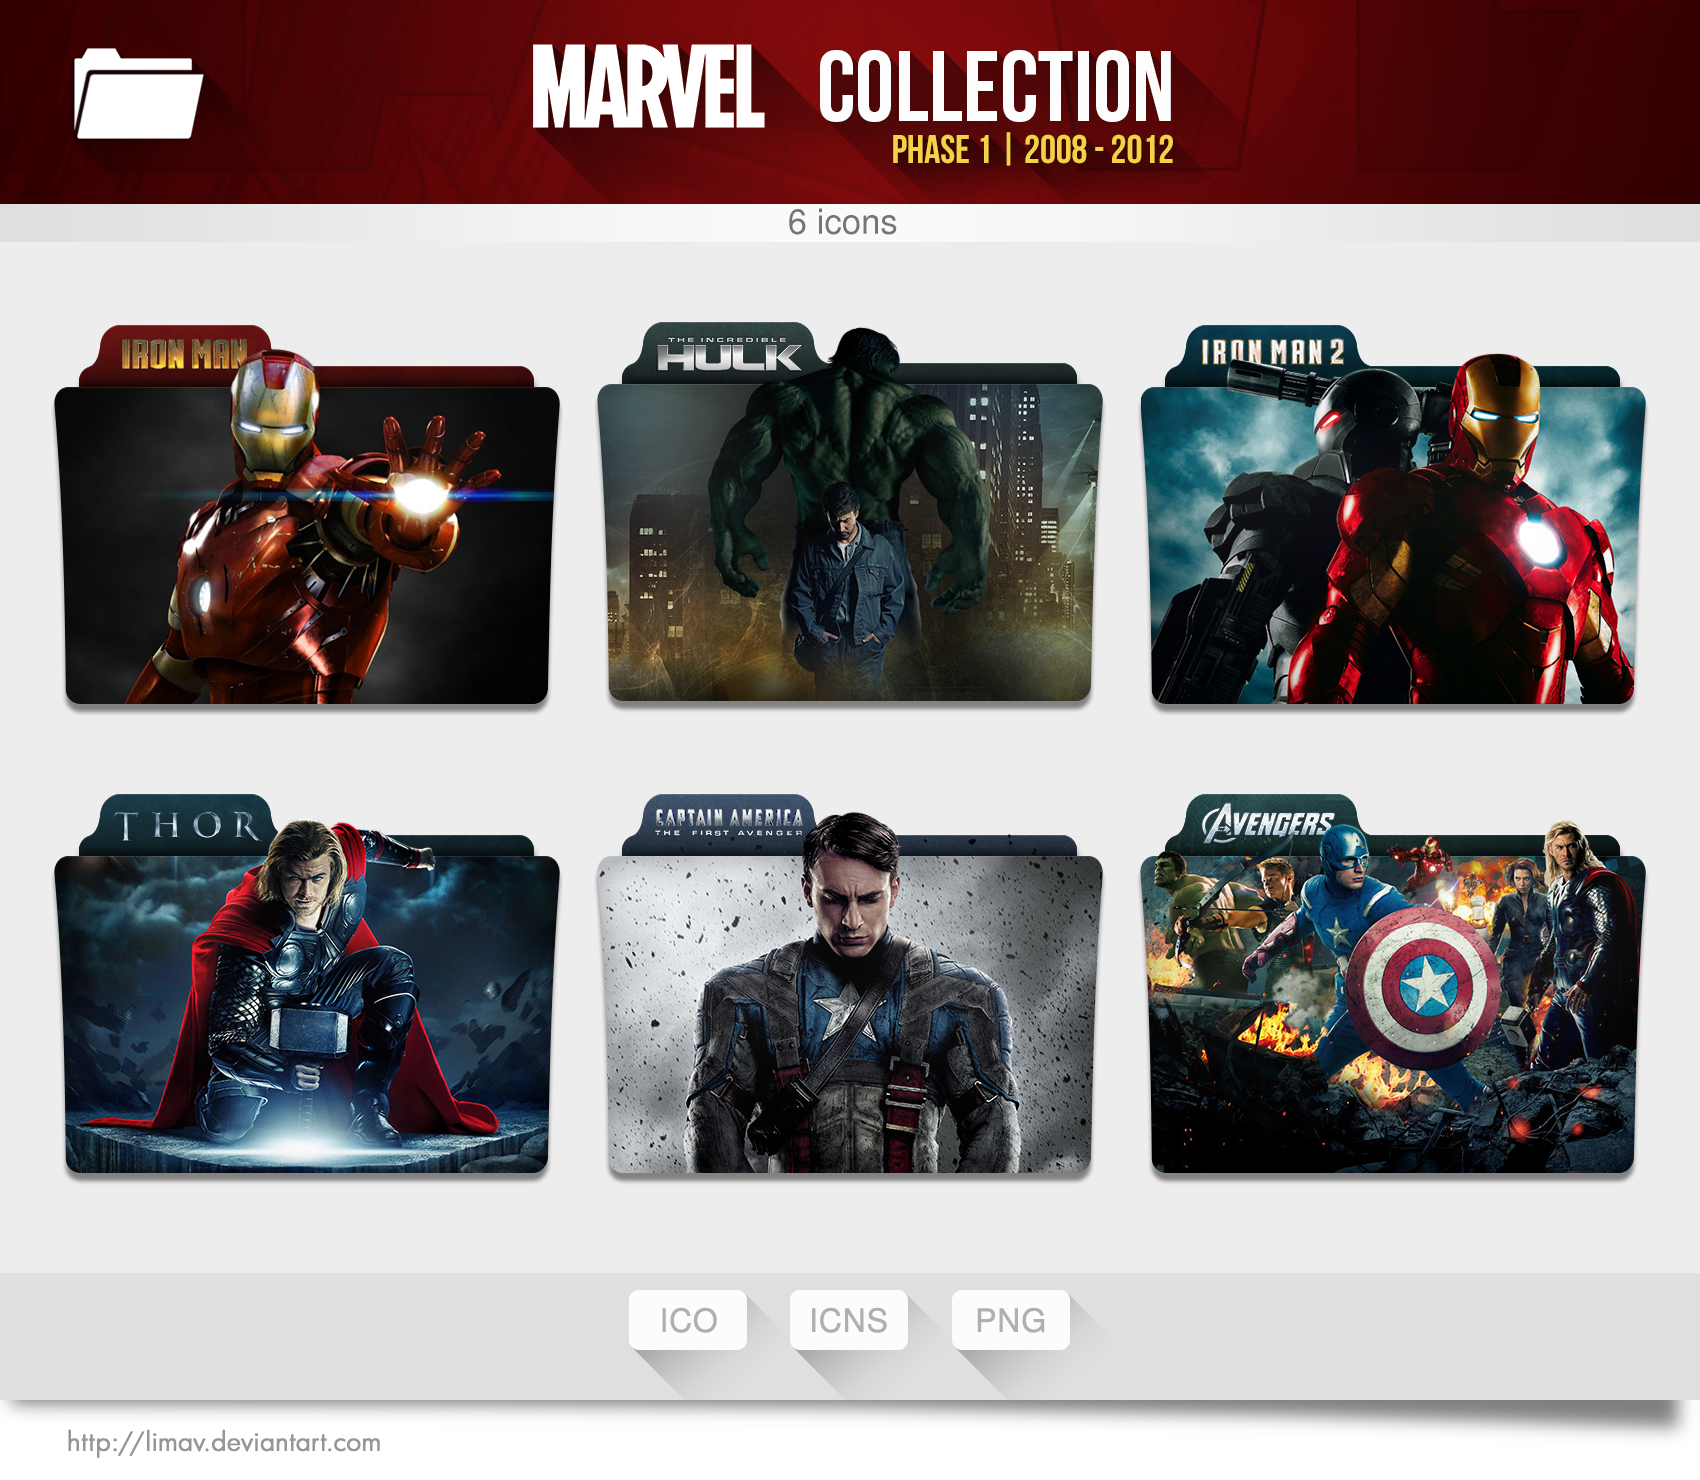 Marvel Collection Folders - Phase 1 by limav on DeviantArt